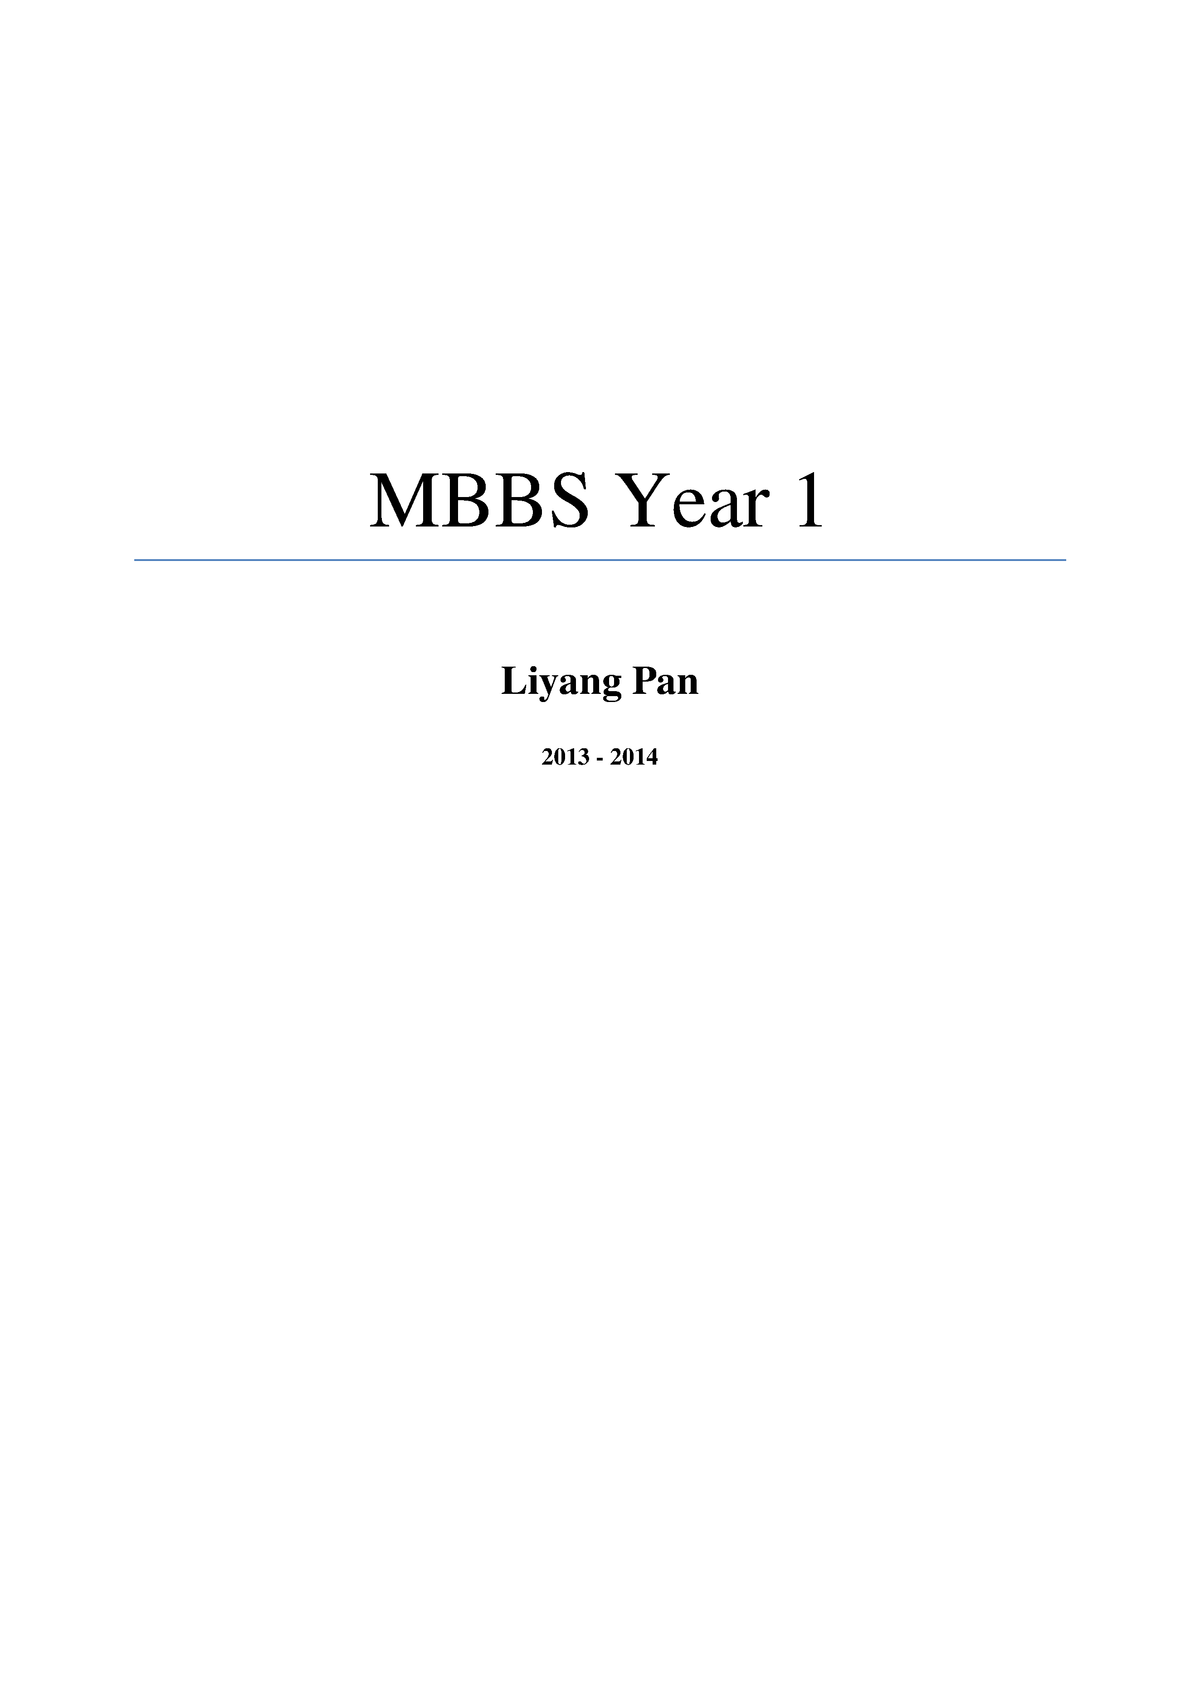 all lectures, year 1 - MBBS : Medicine - StuDocu